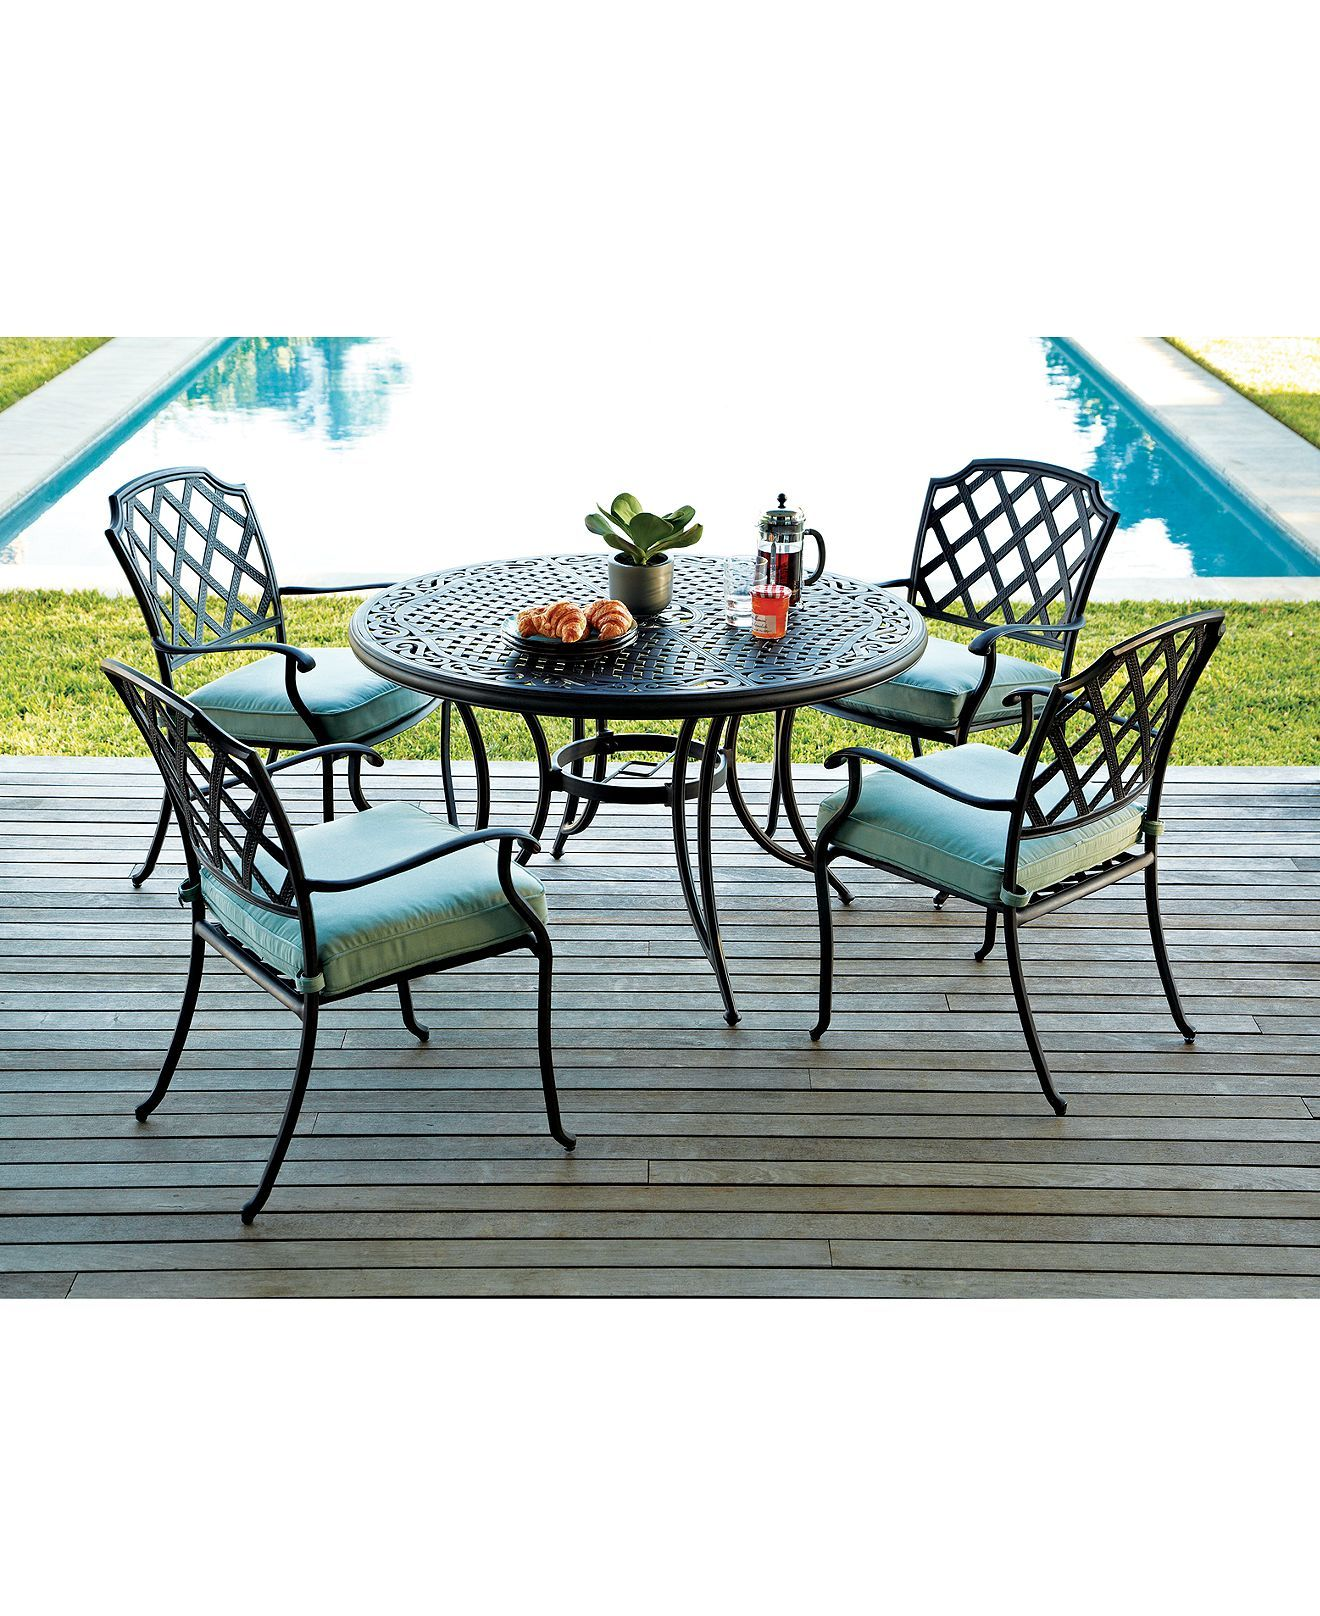 Nottingham Outdoor Patio Furniture Dining Sets & Pieces Patio